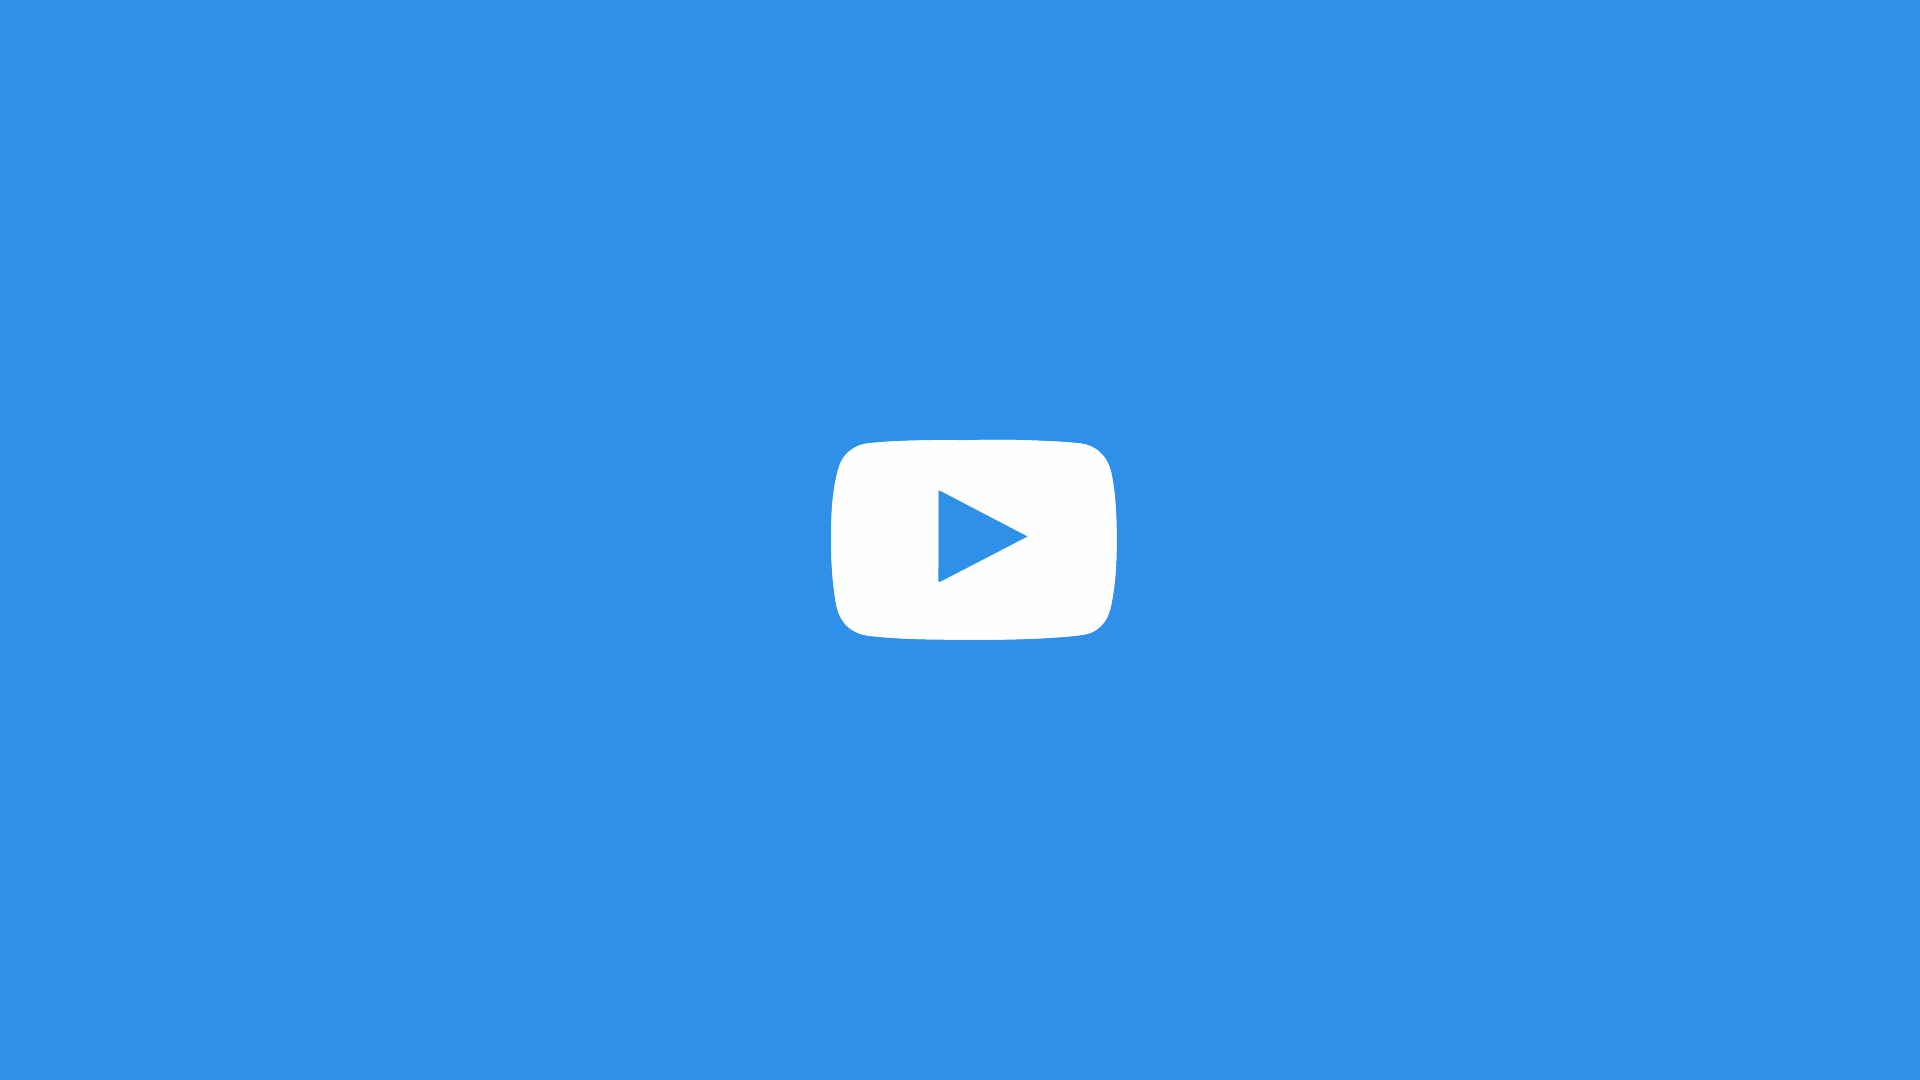 YouTube Blauw